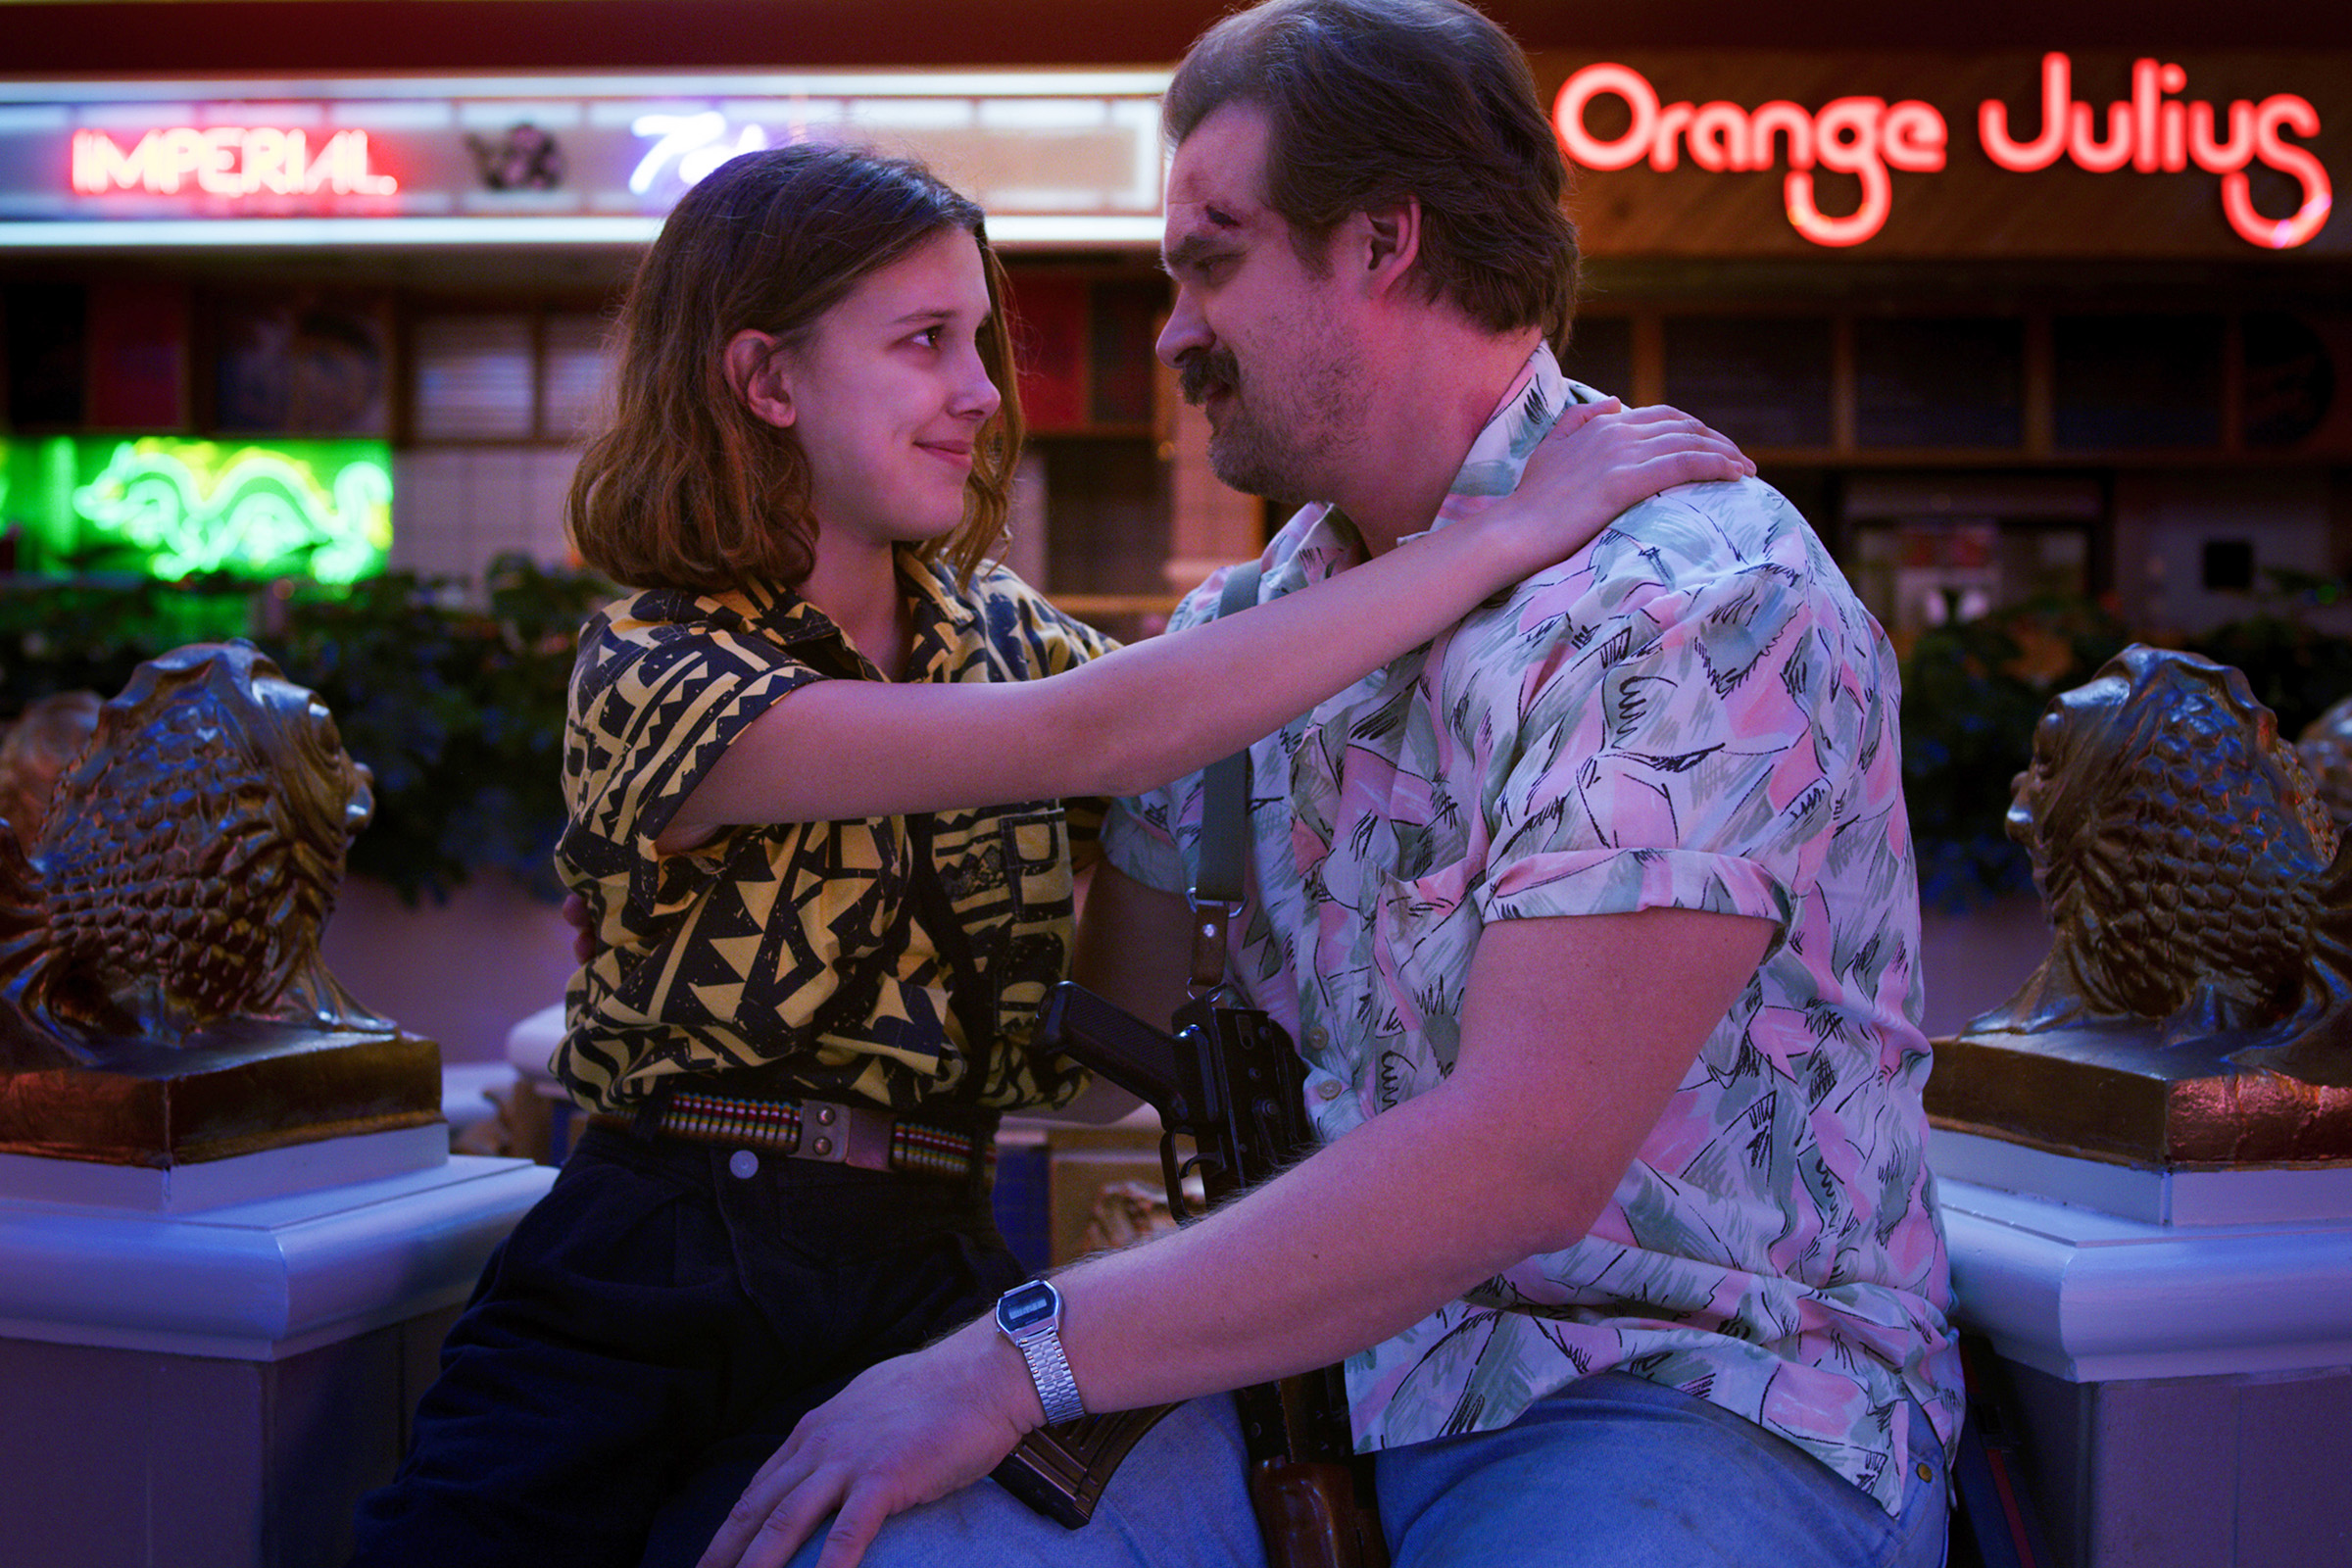 Eleven and Hopper; a complex relationship, forged by circumstances, but held together by love